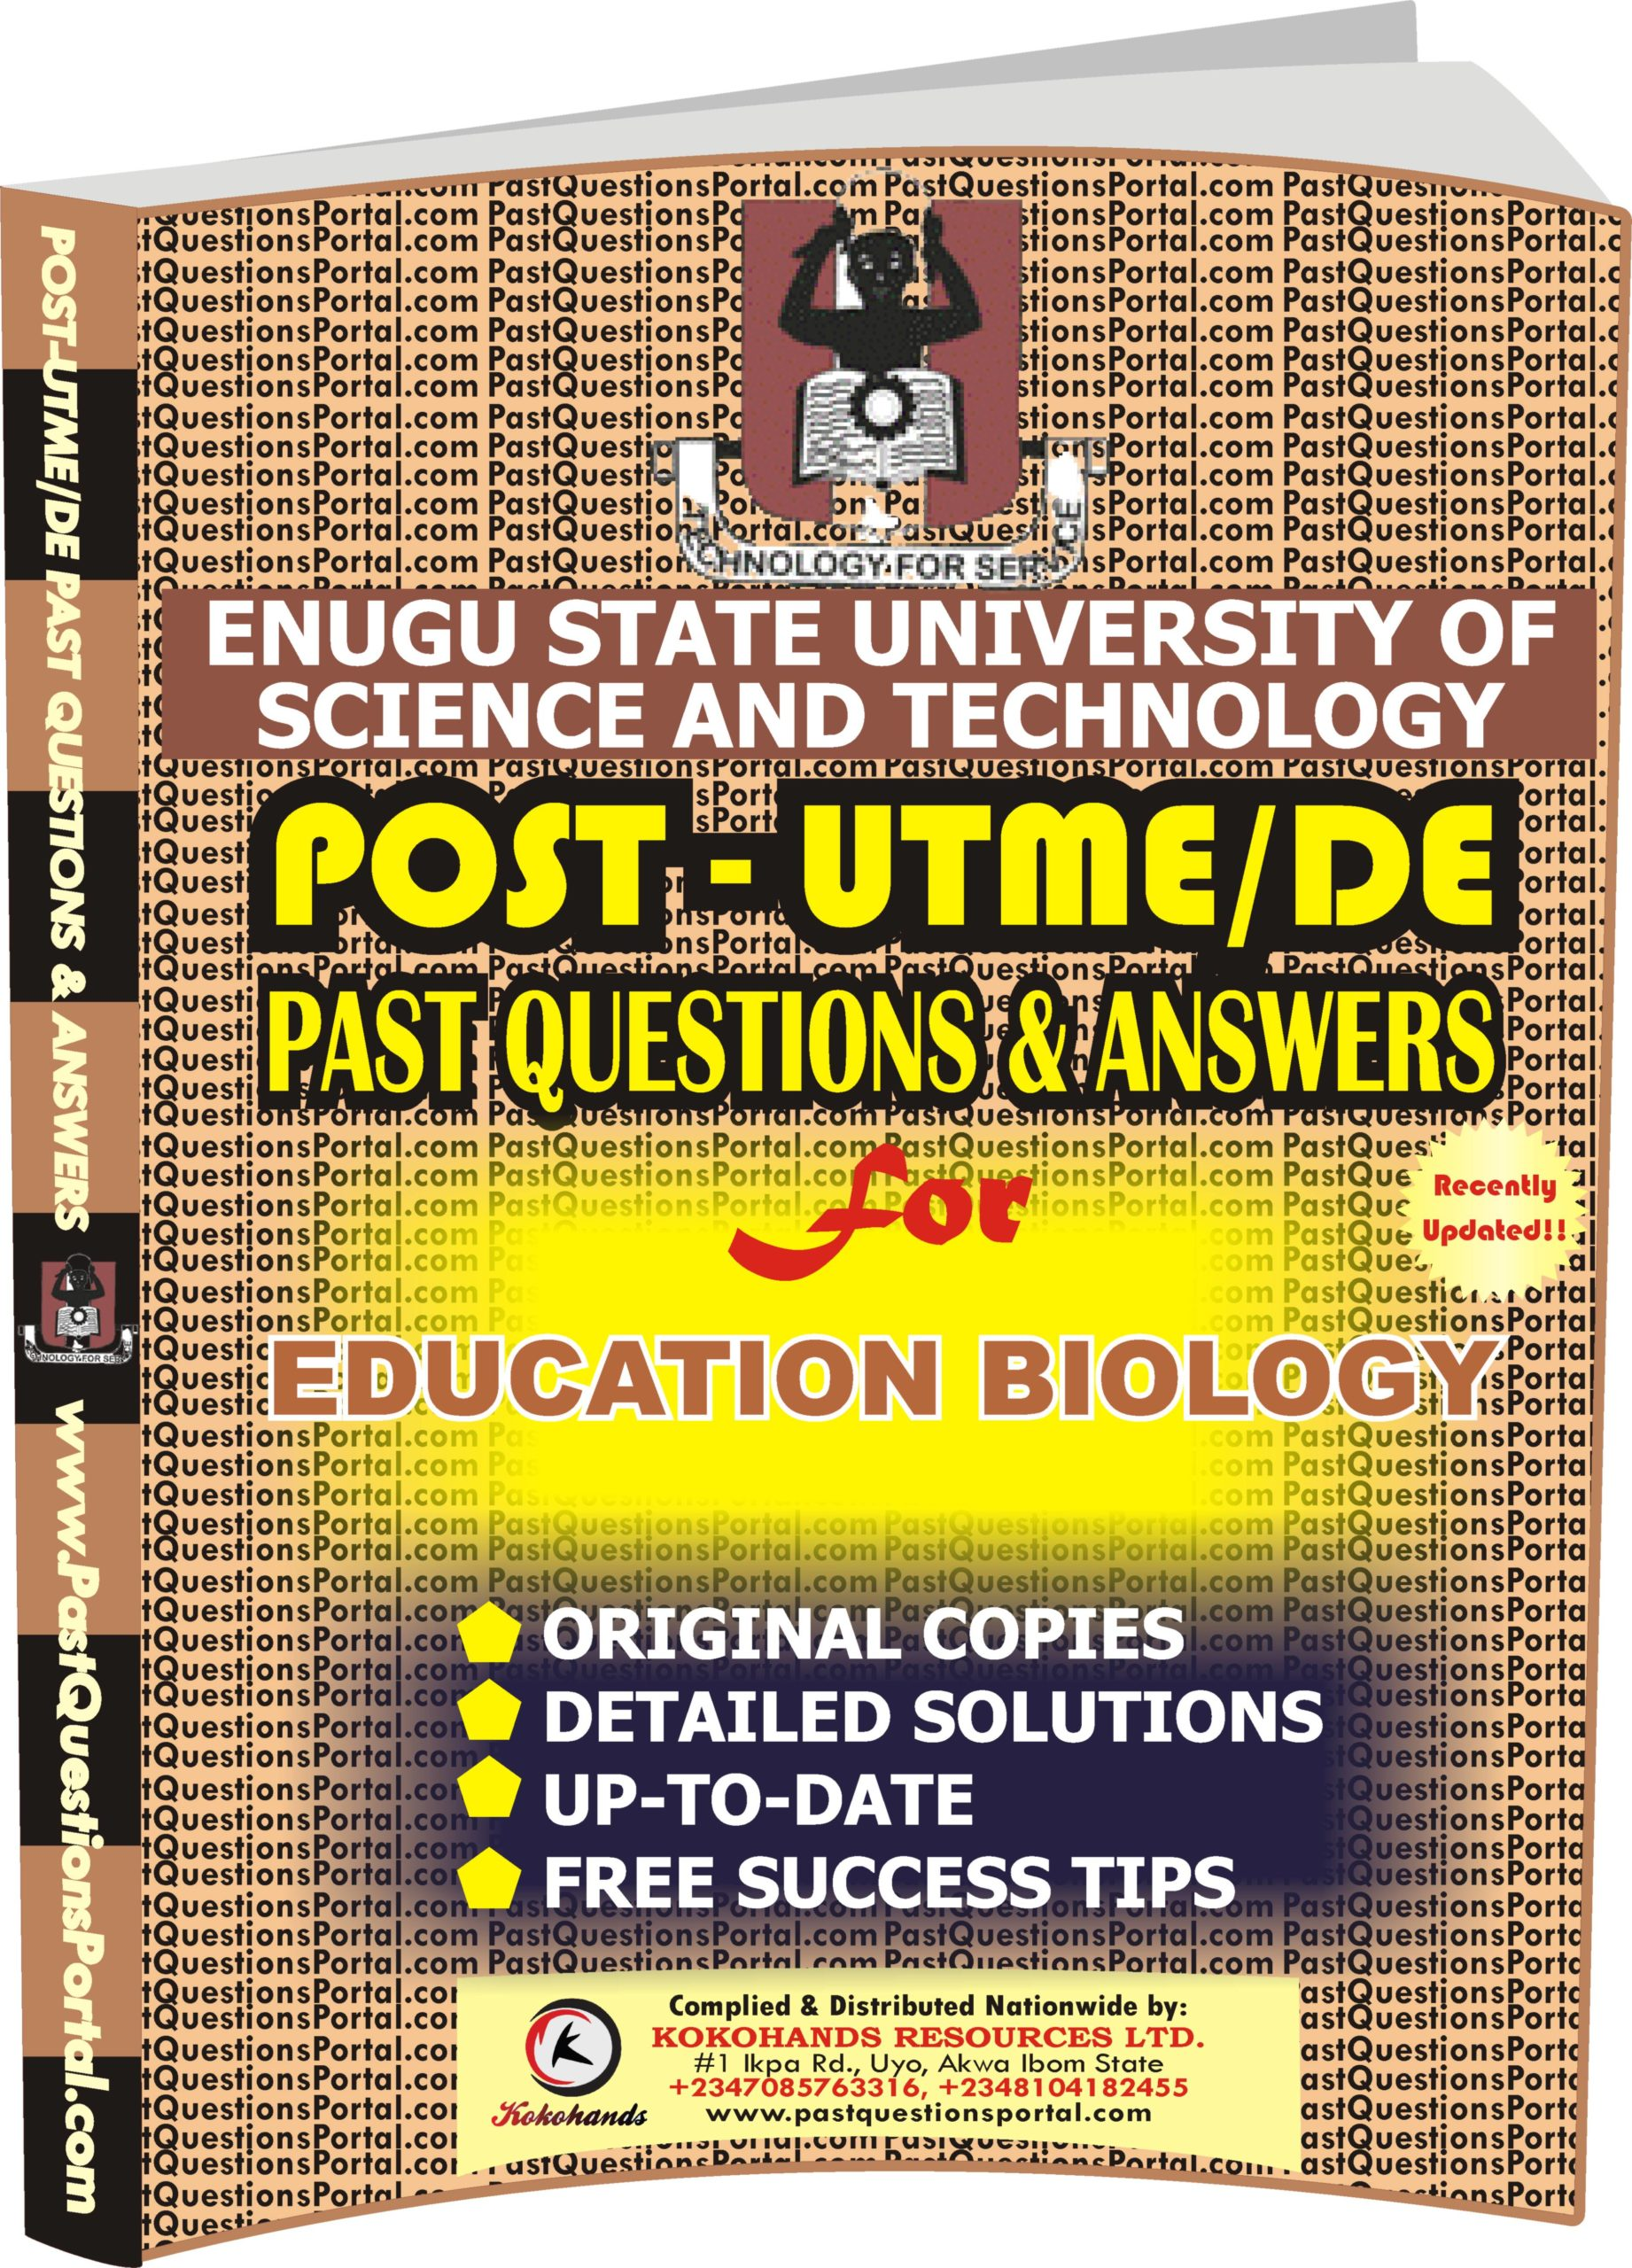 ESUT Post UTME Past Questions for EDUCATION BIOLOGY